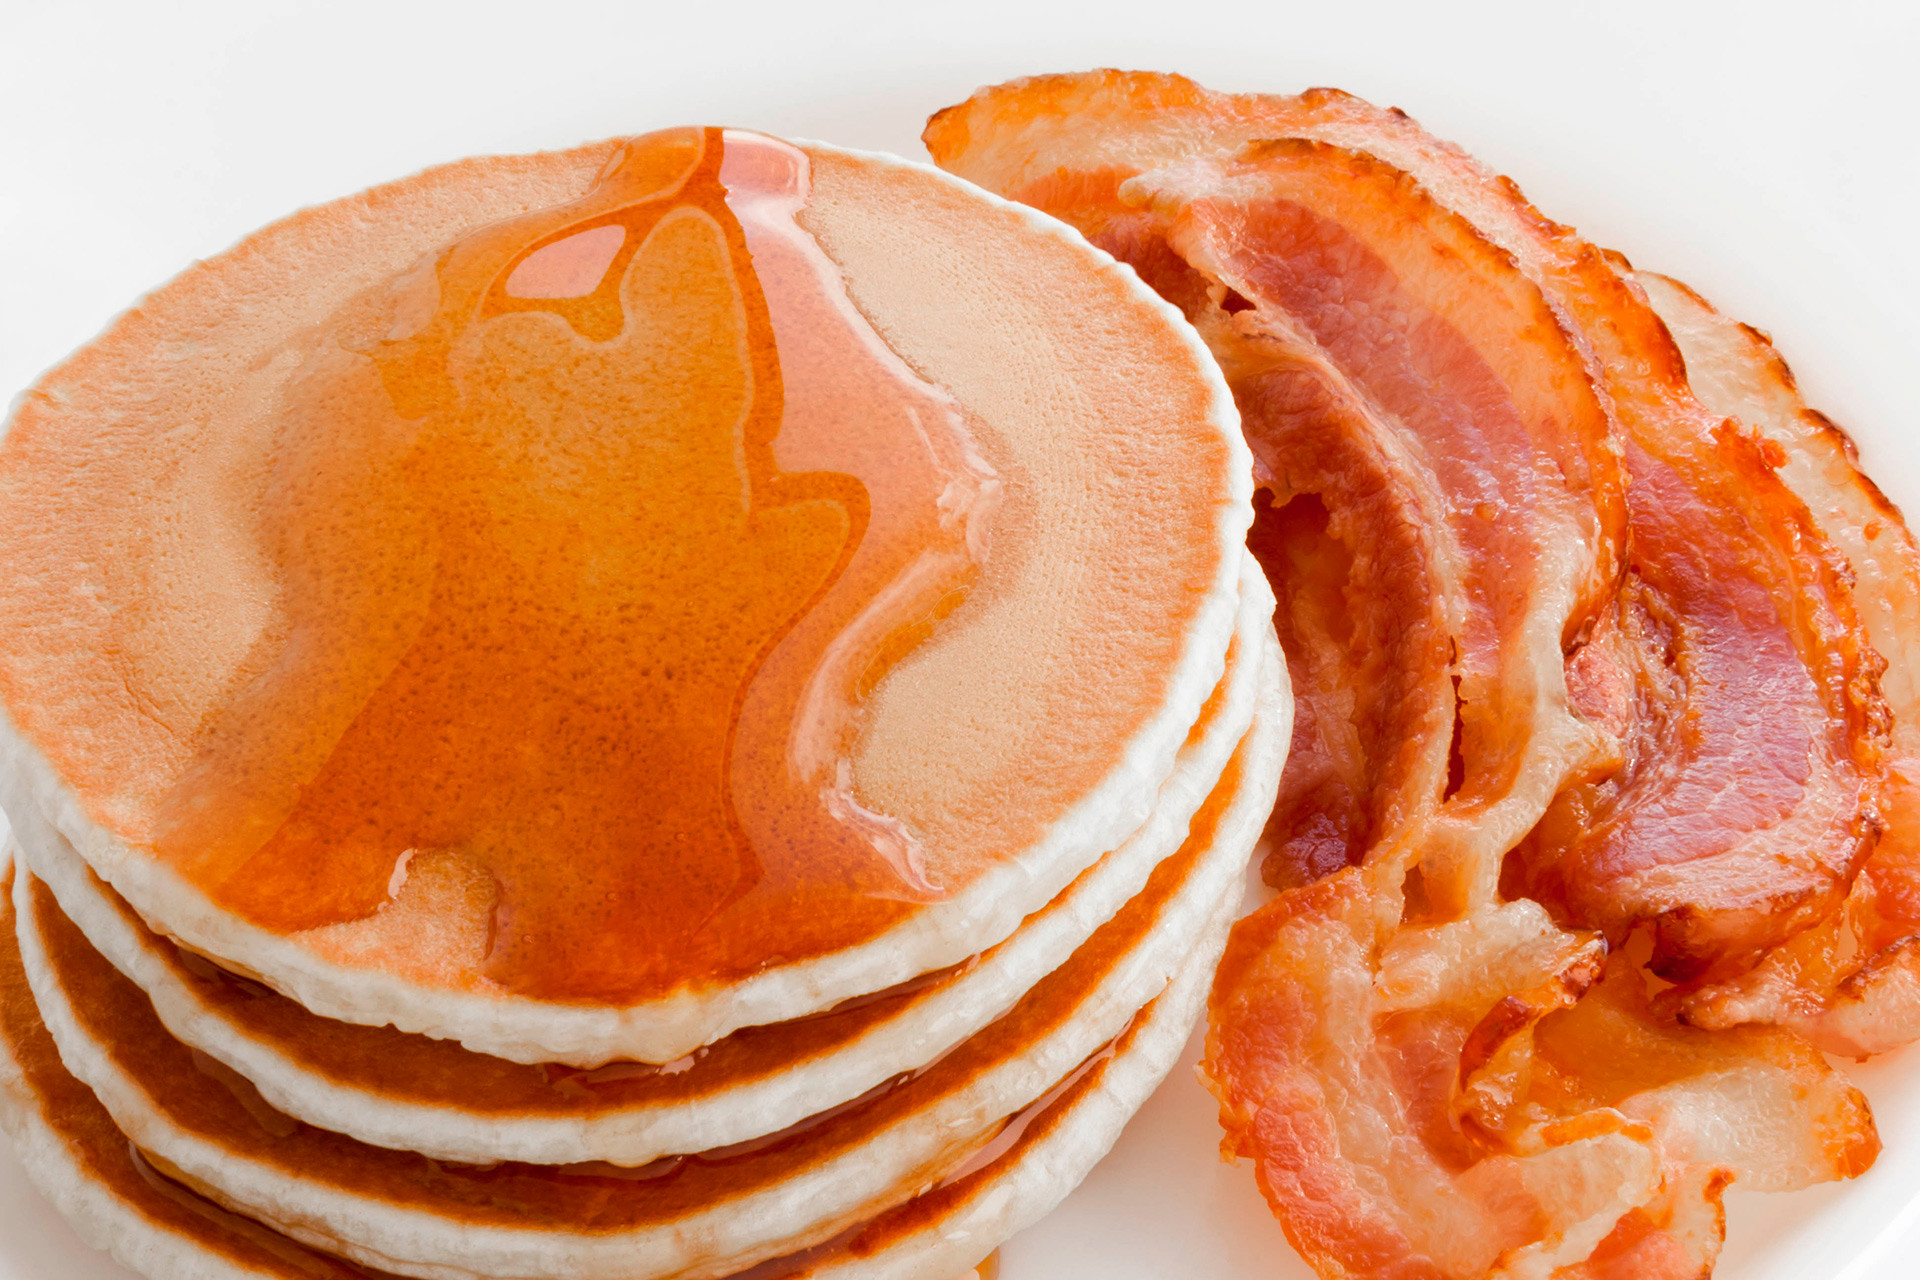 Pancakes with maple syrup and bacon.